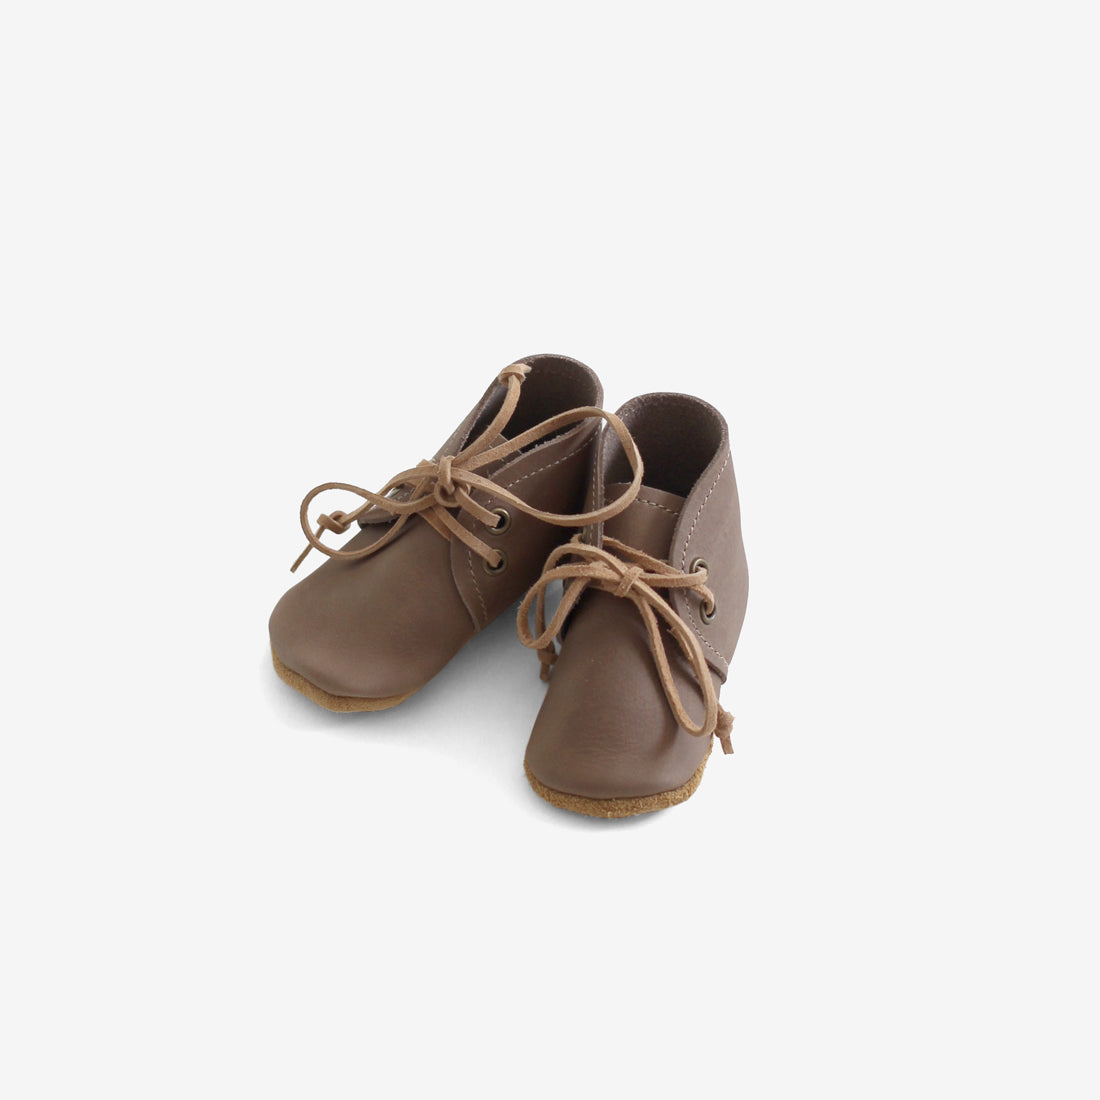 Soft-sole Leather Desert Baby Boots - Taupe